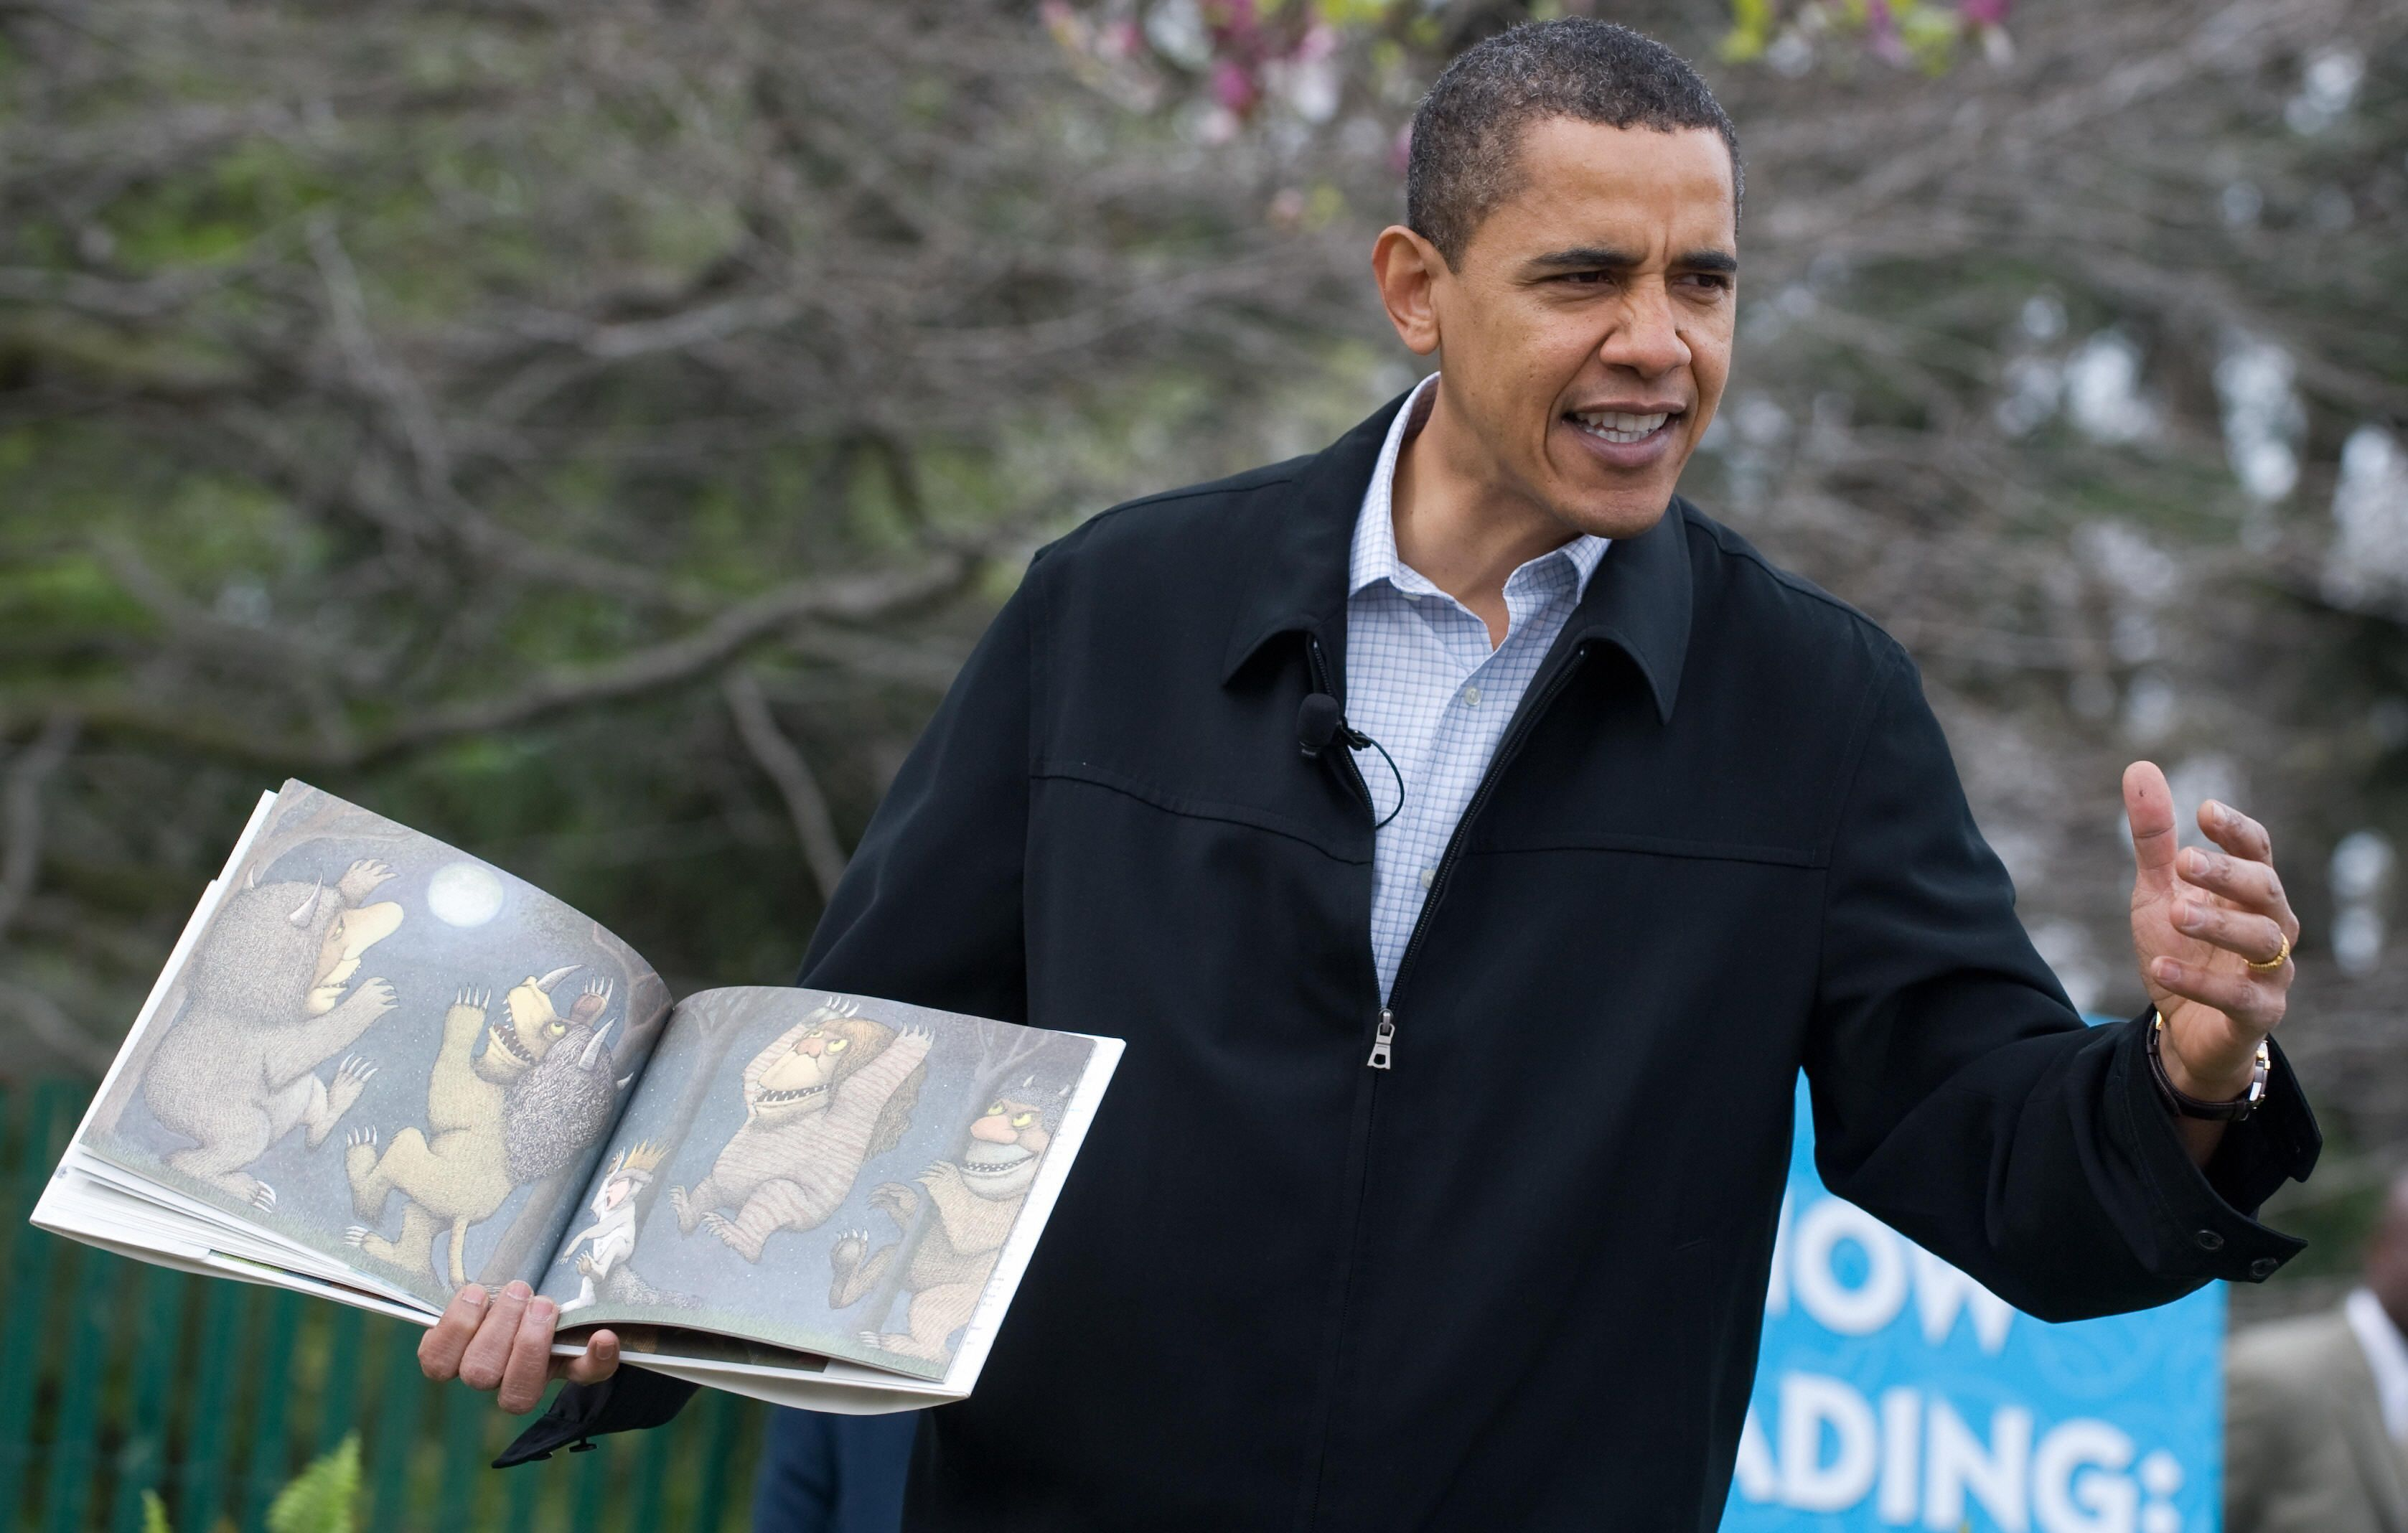 President Barack Obama reads Where the Wild Thing Are to young children at the annual White House Easter Egg Roll on April 13, 2009.